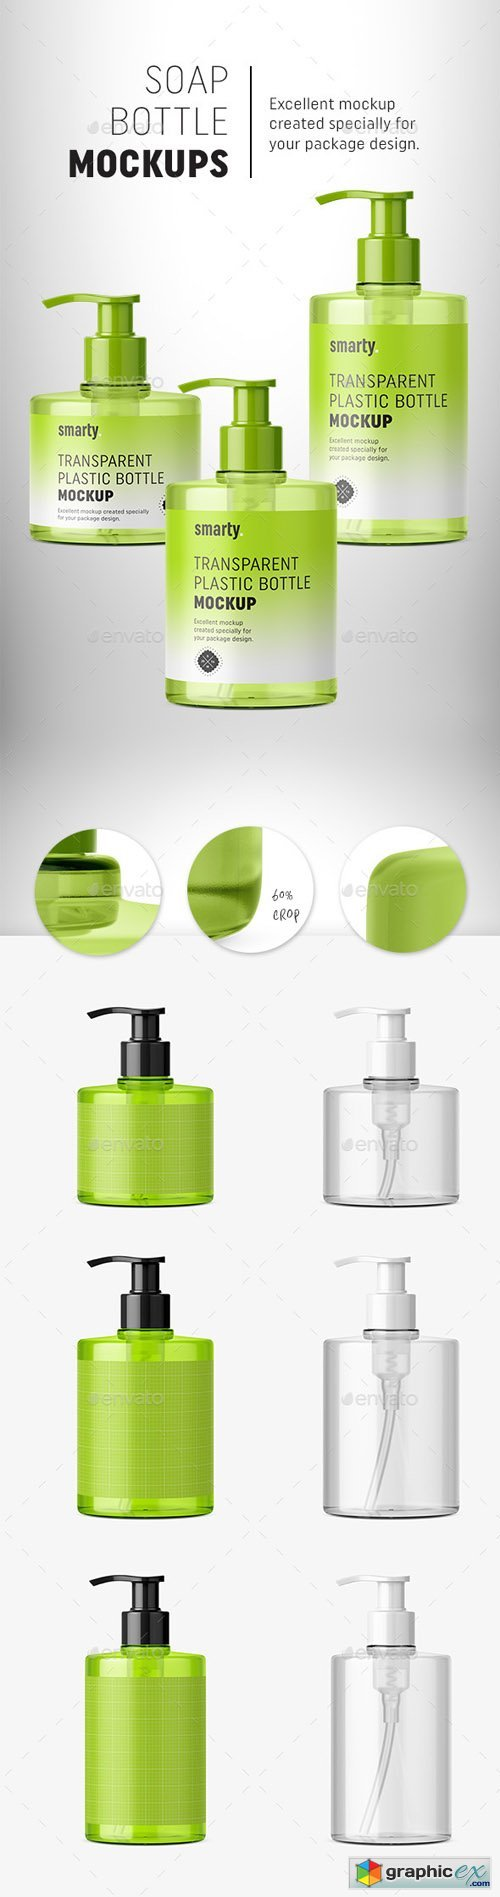 Soap Bottle Mockups